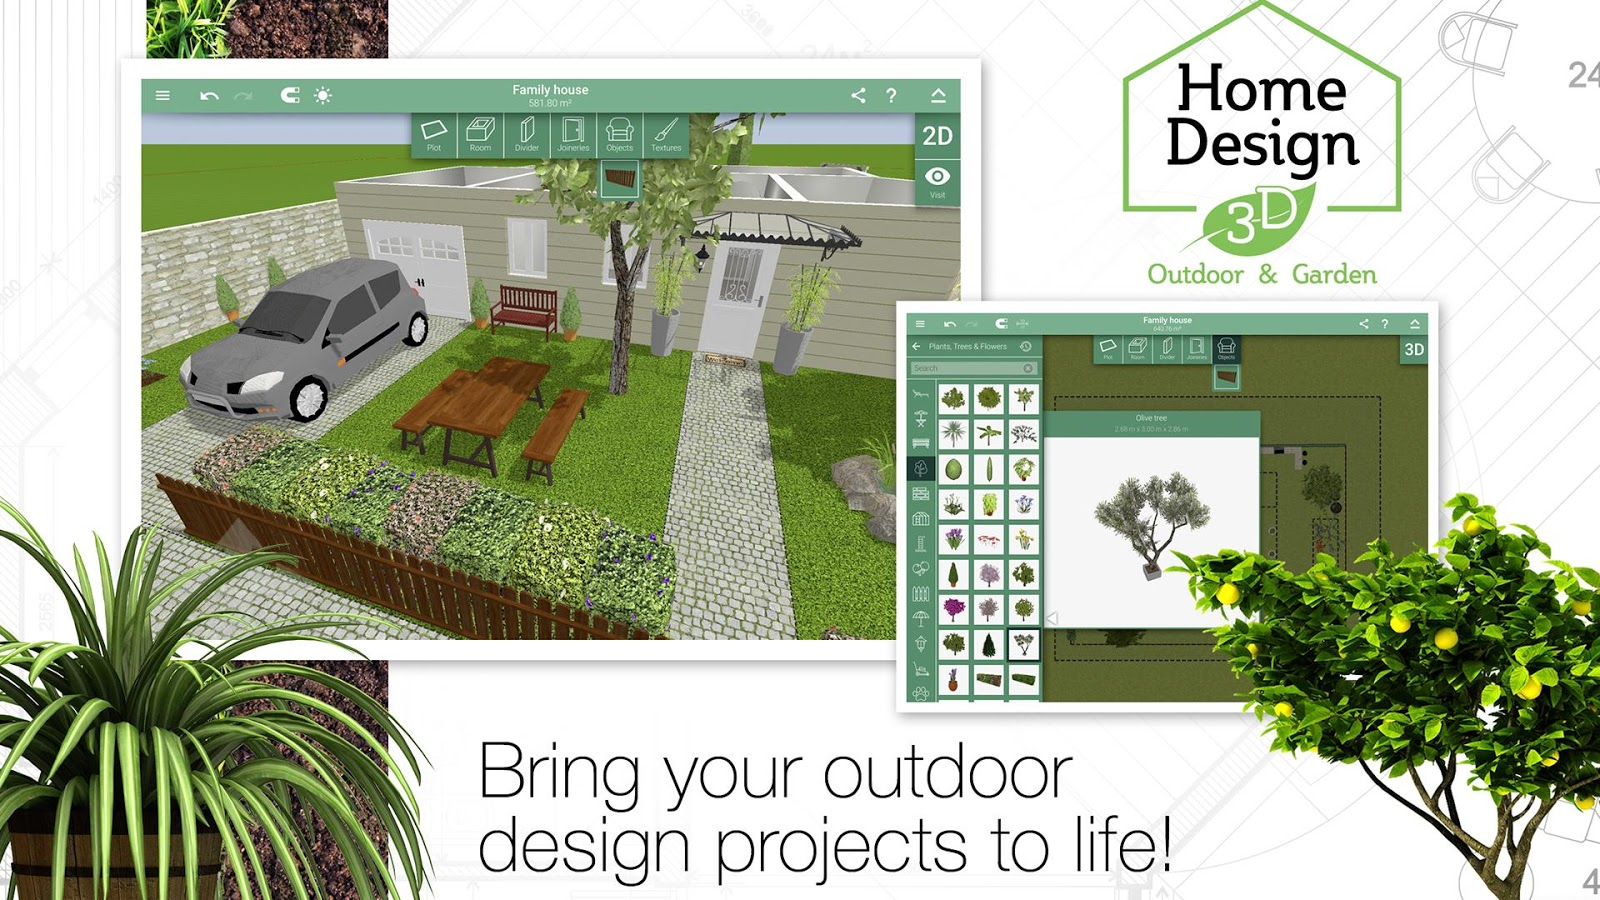 Home design 3d outdoor garden android apps on google play for 3d house design app